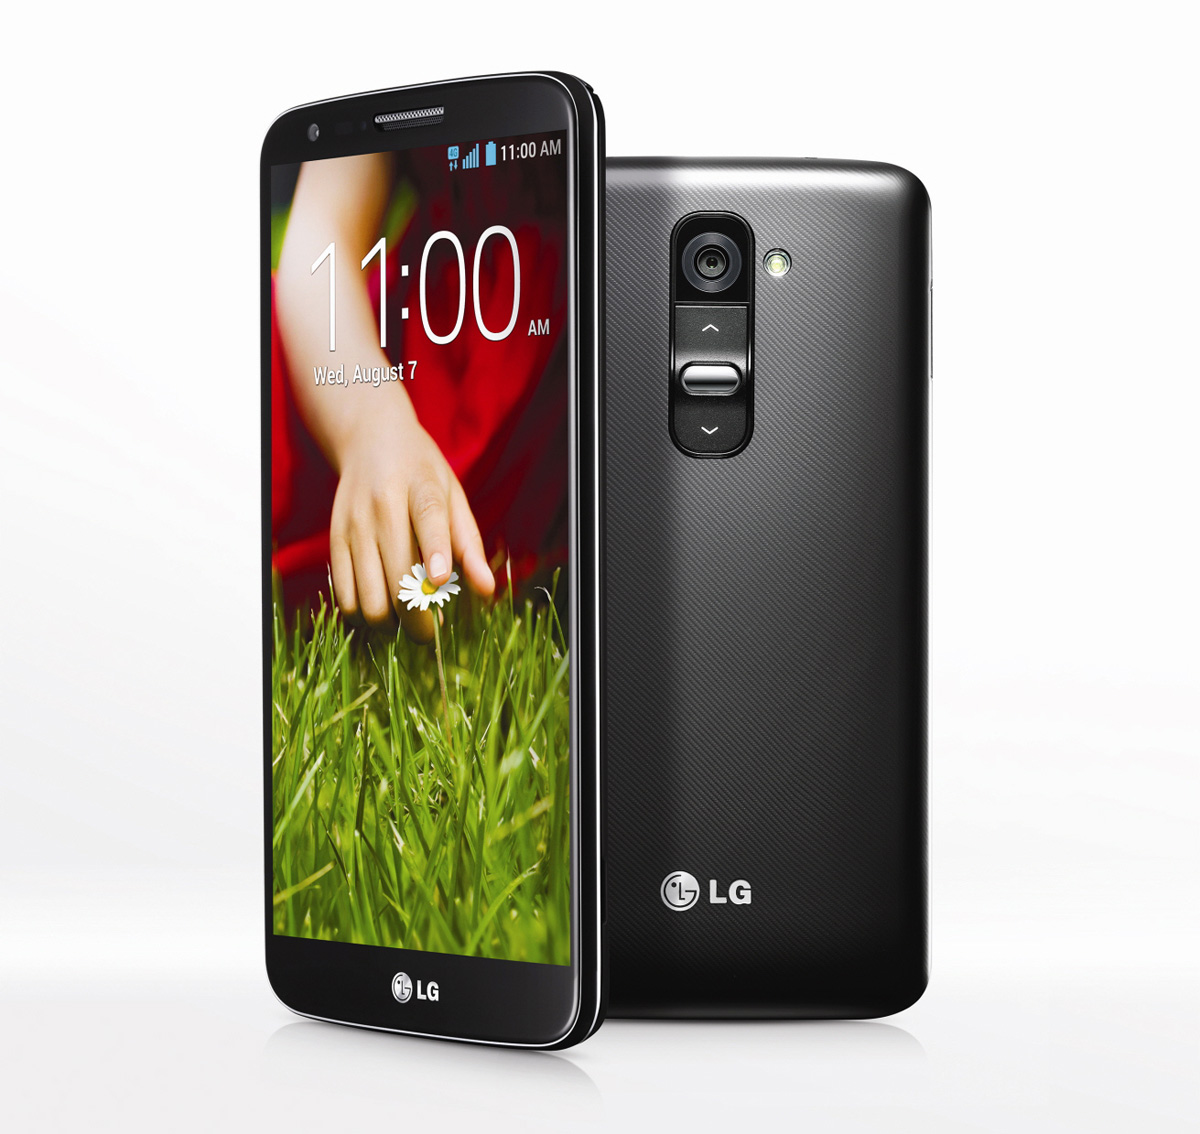 A shot of the LG G2.